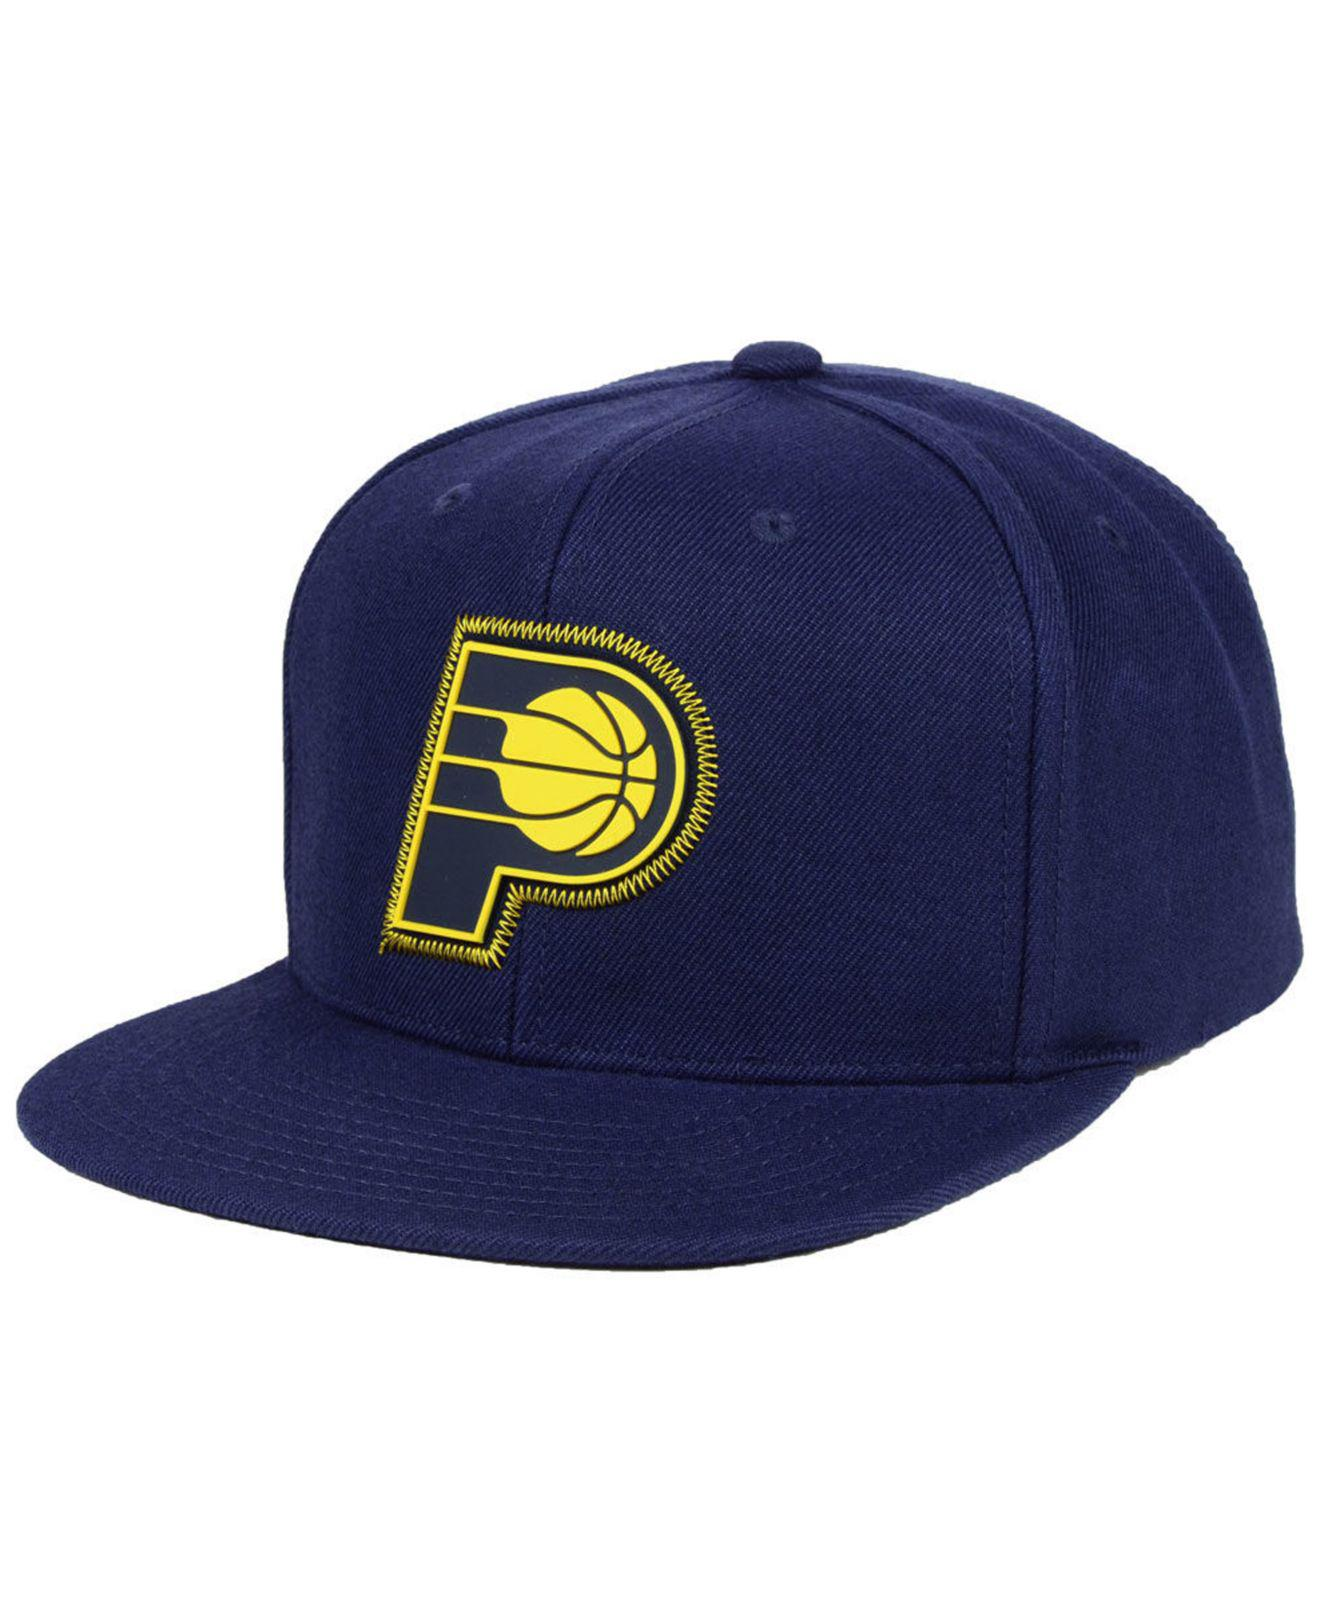 wholesale dealer e213f 94889 ... spain mitchell ness. mens blue indiana pacers zig zag snapback cap  8110b 8f510